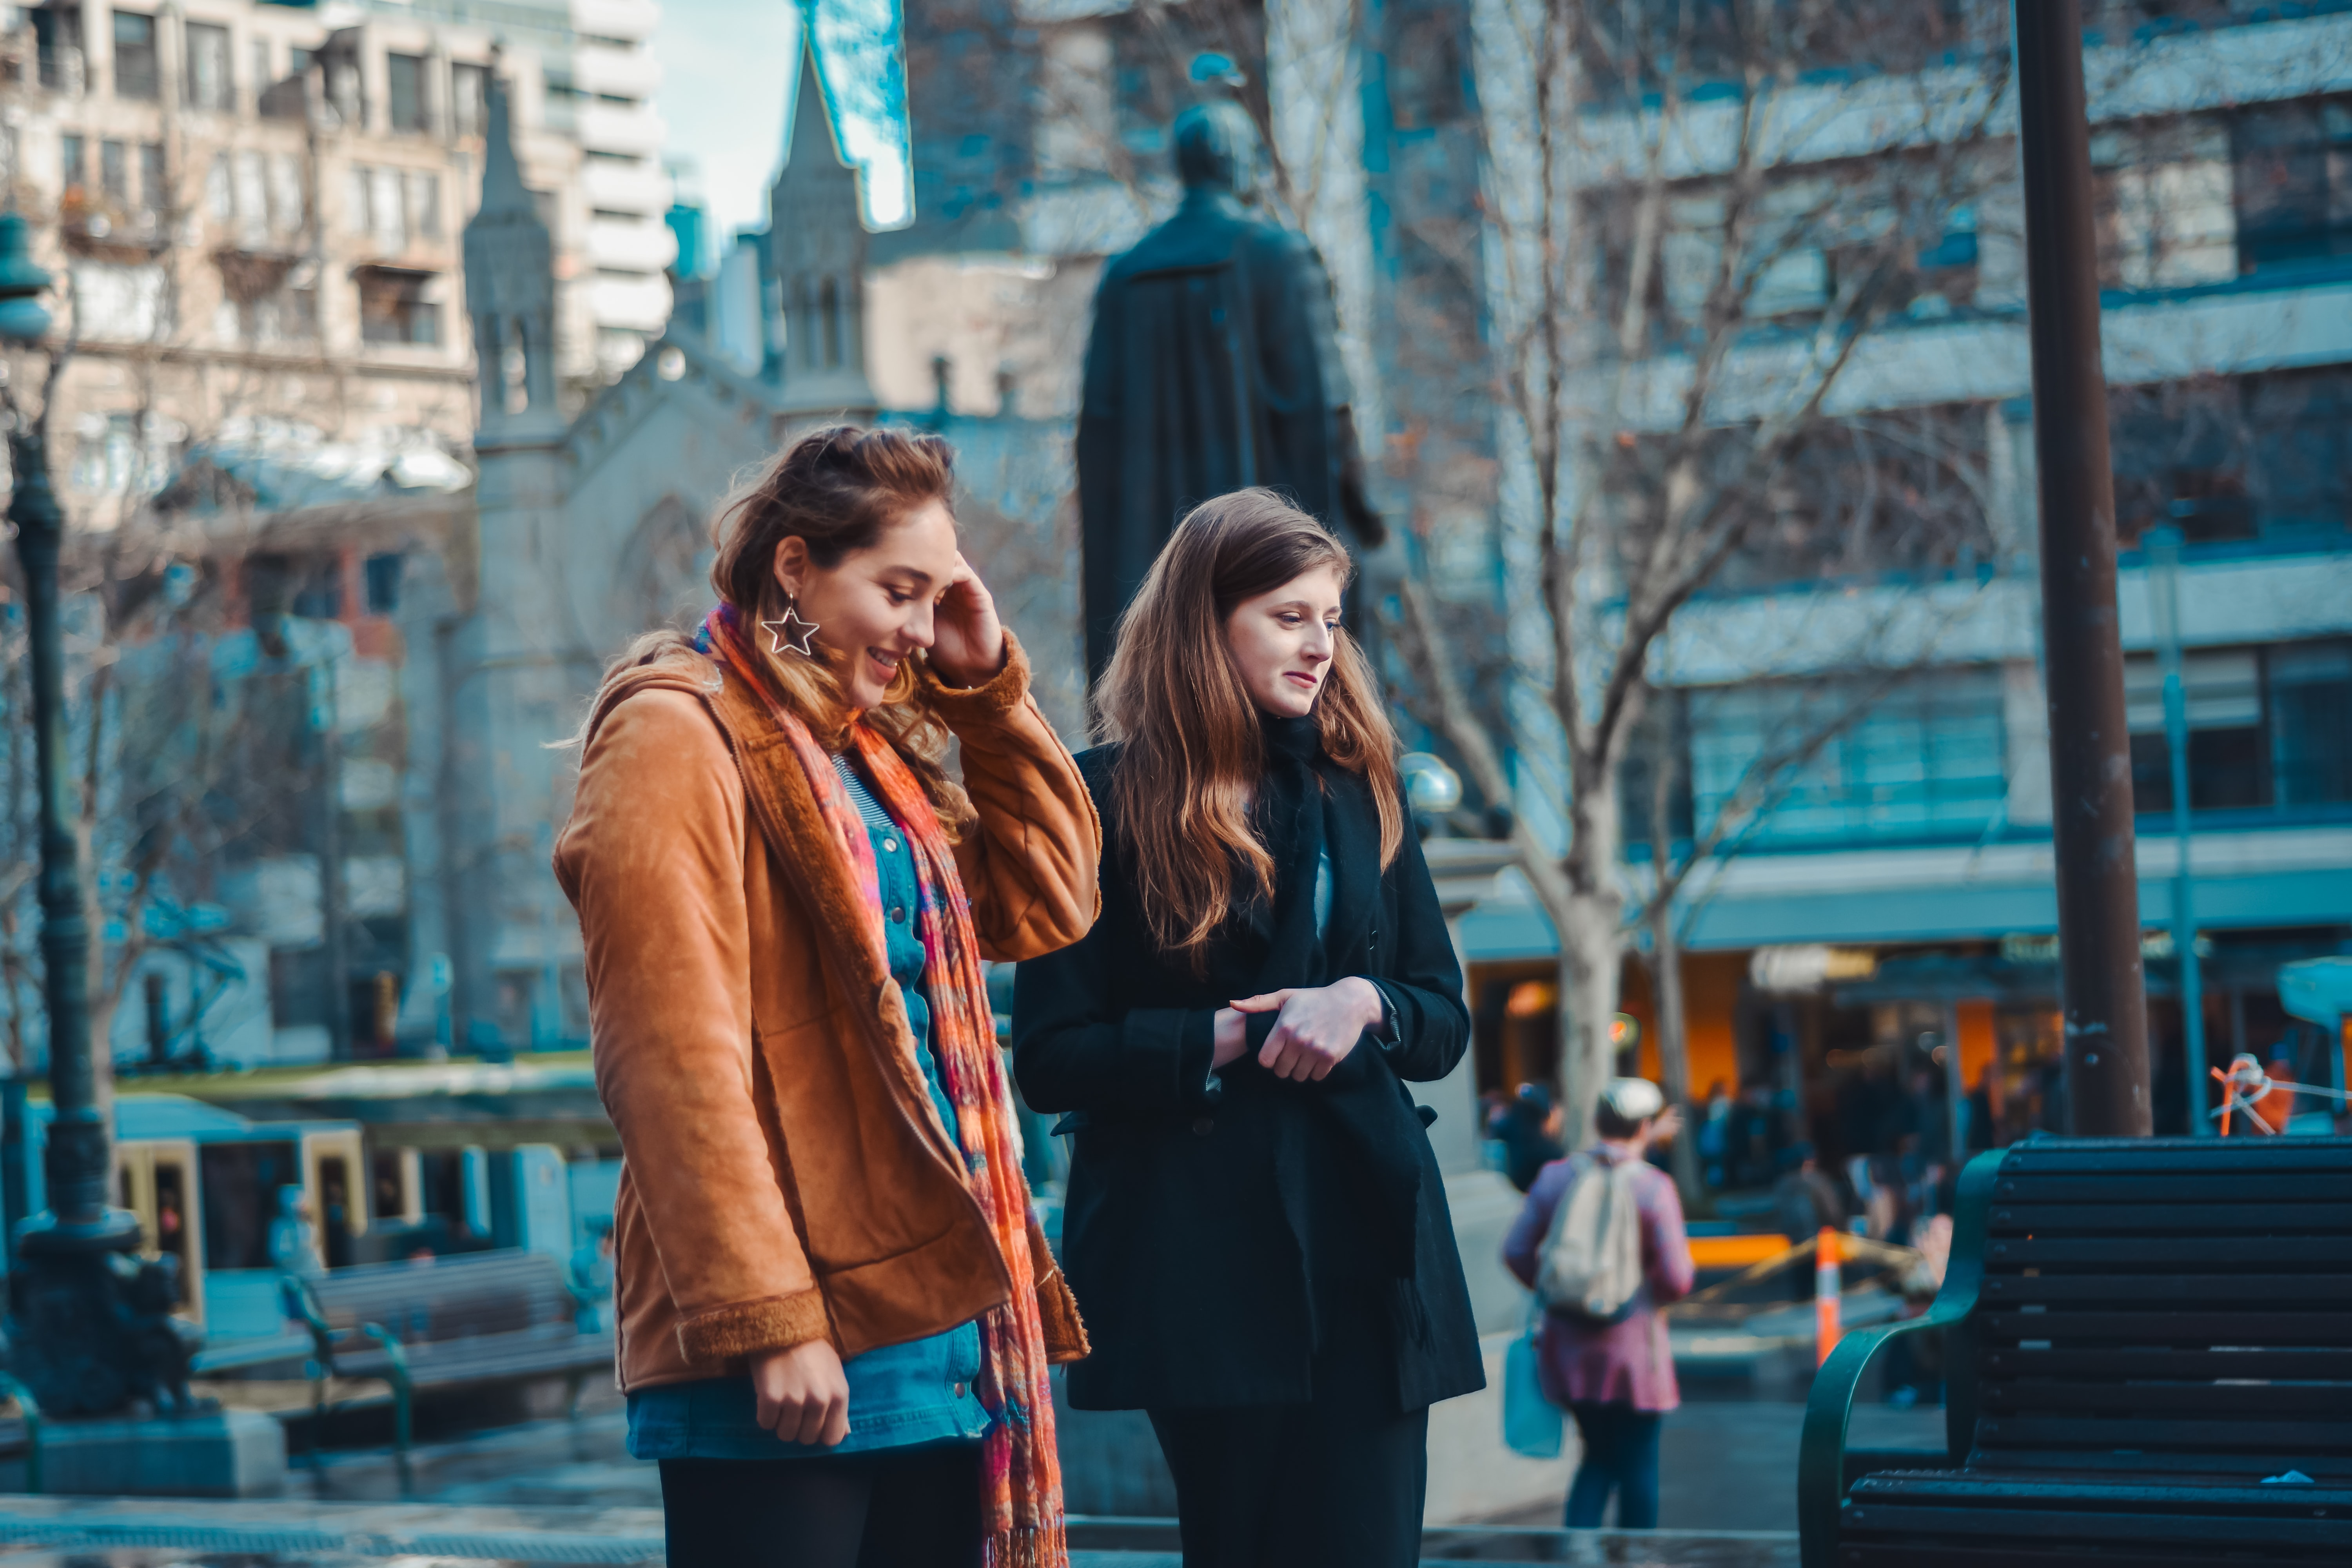 shallow focus photography of two women walking next to each other